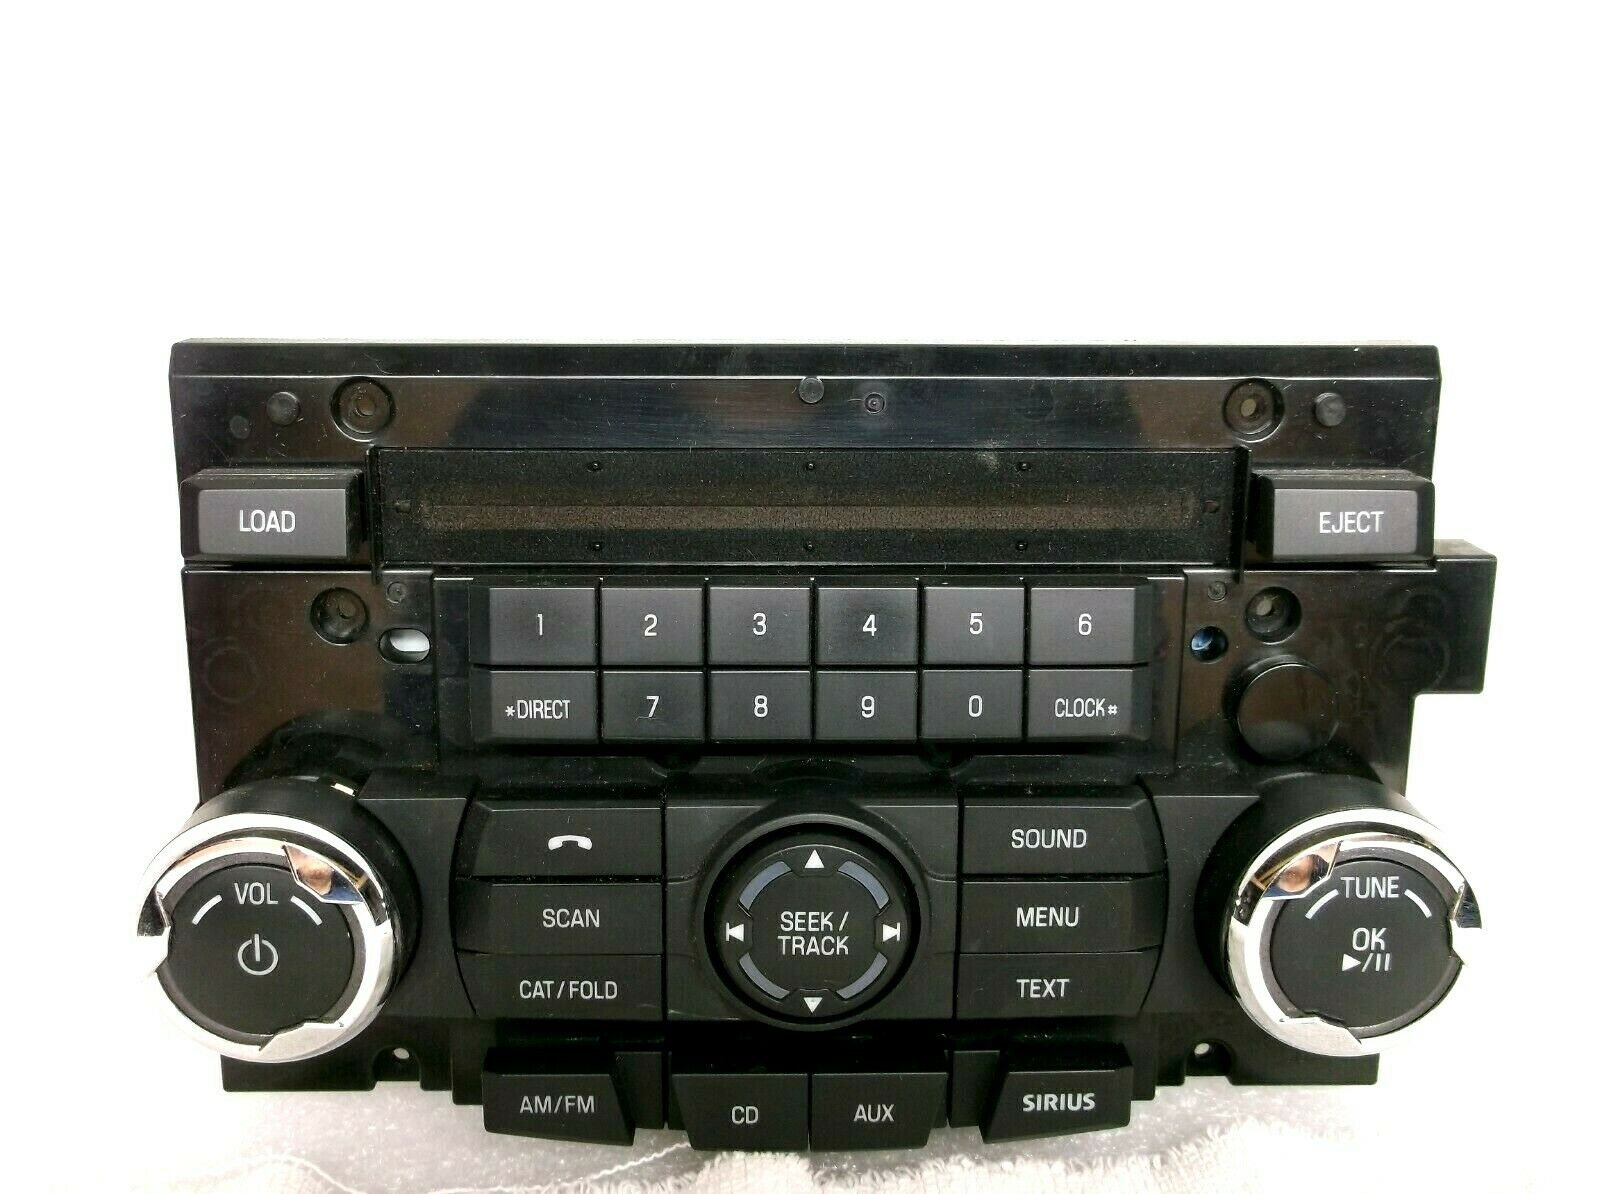 Ford Fusion Cd Player Not Working